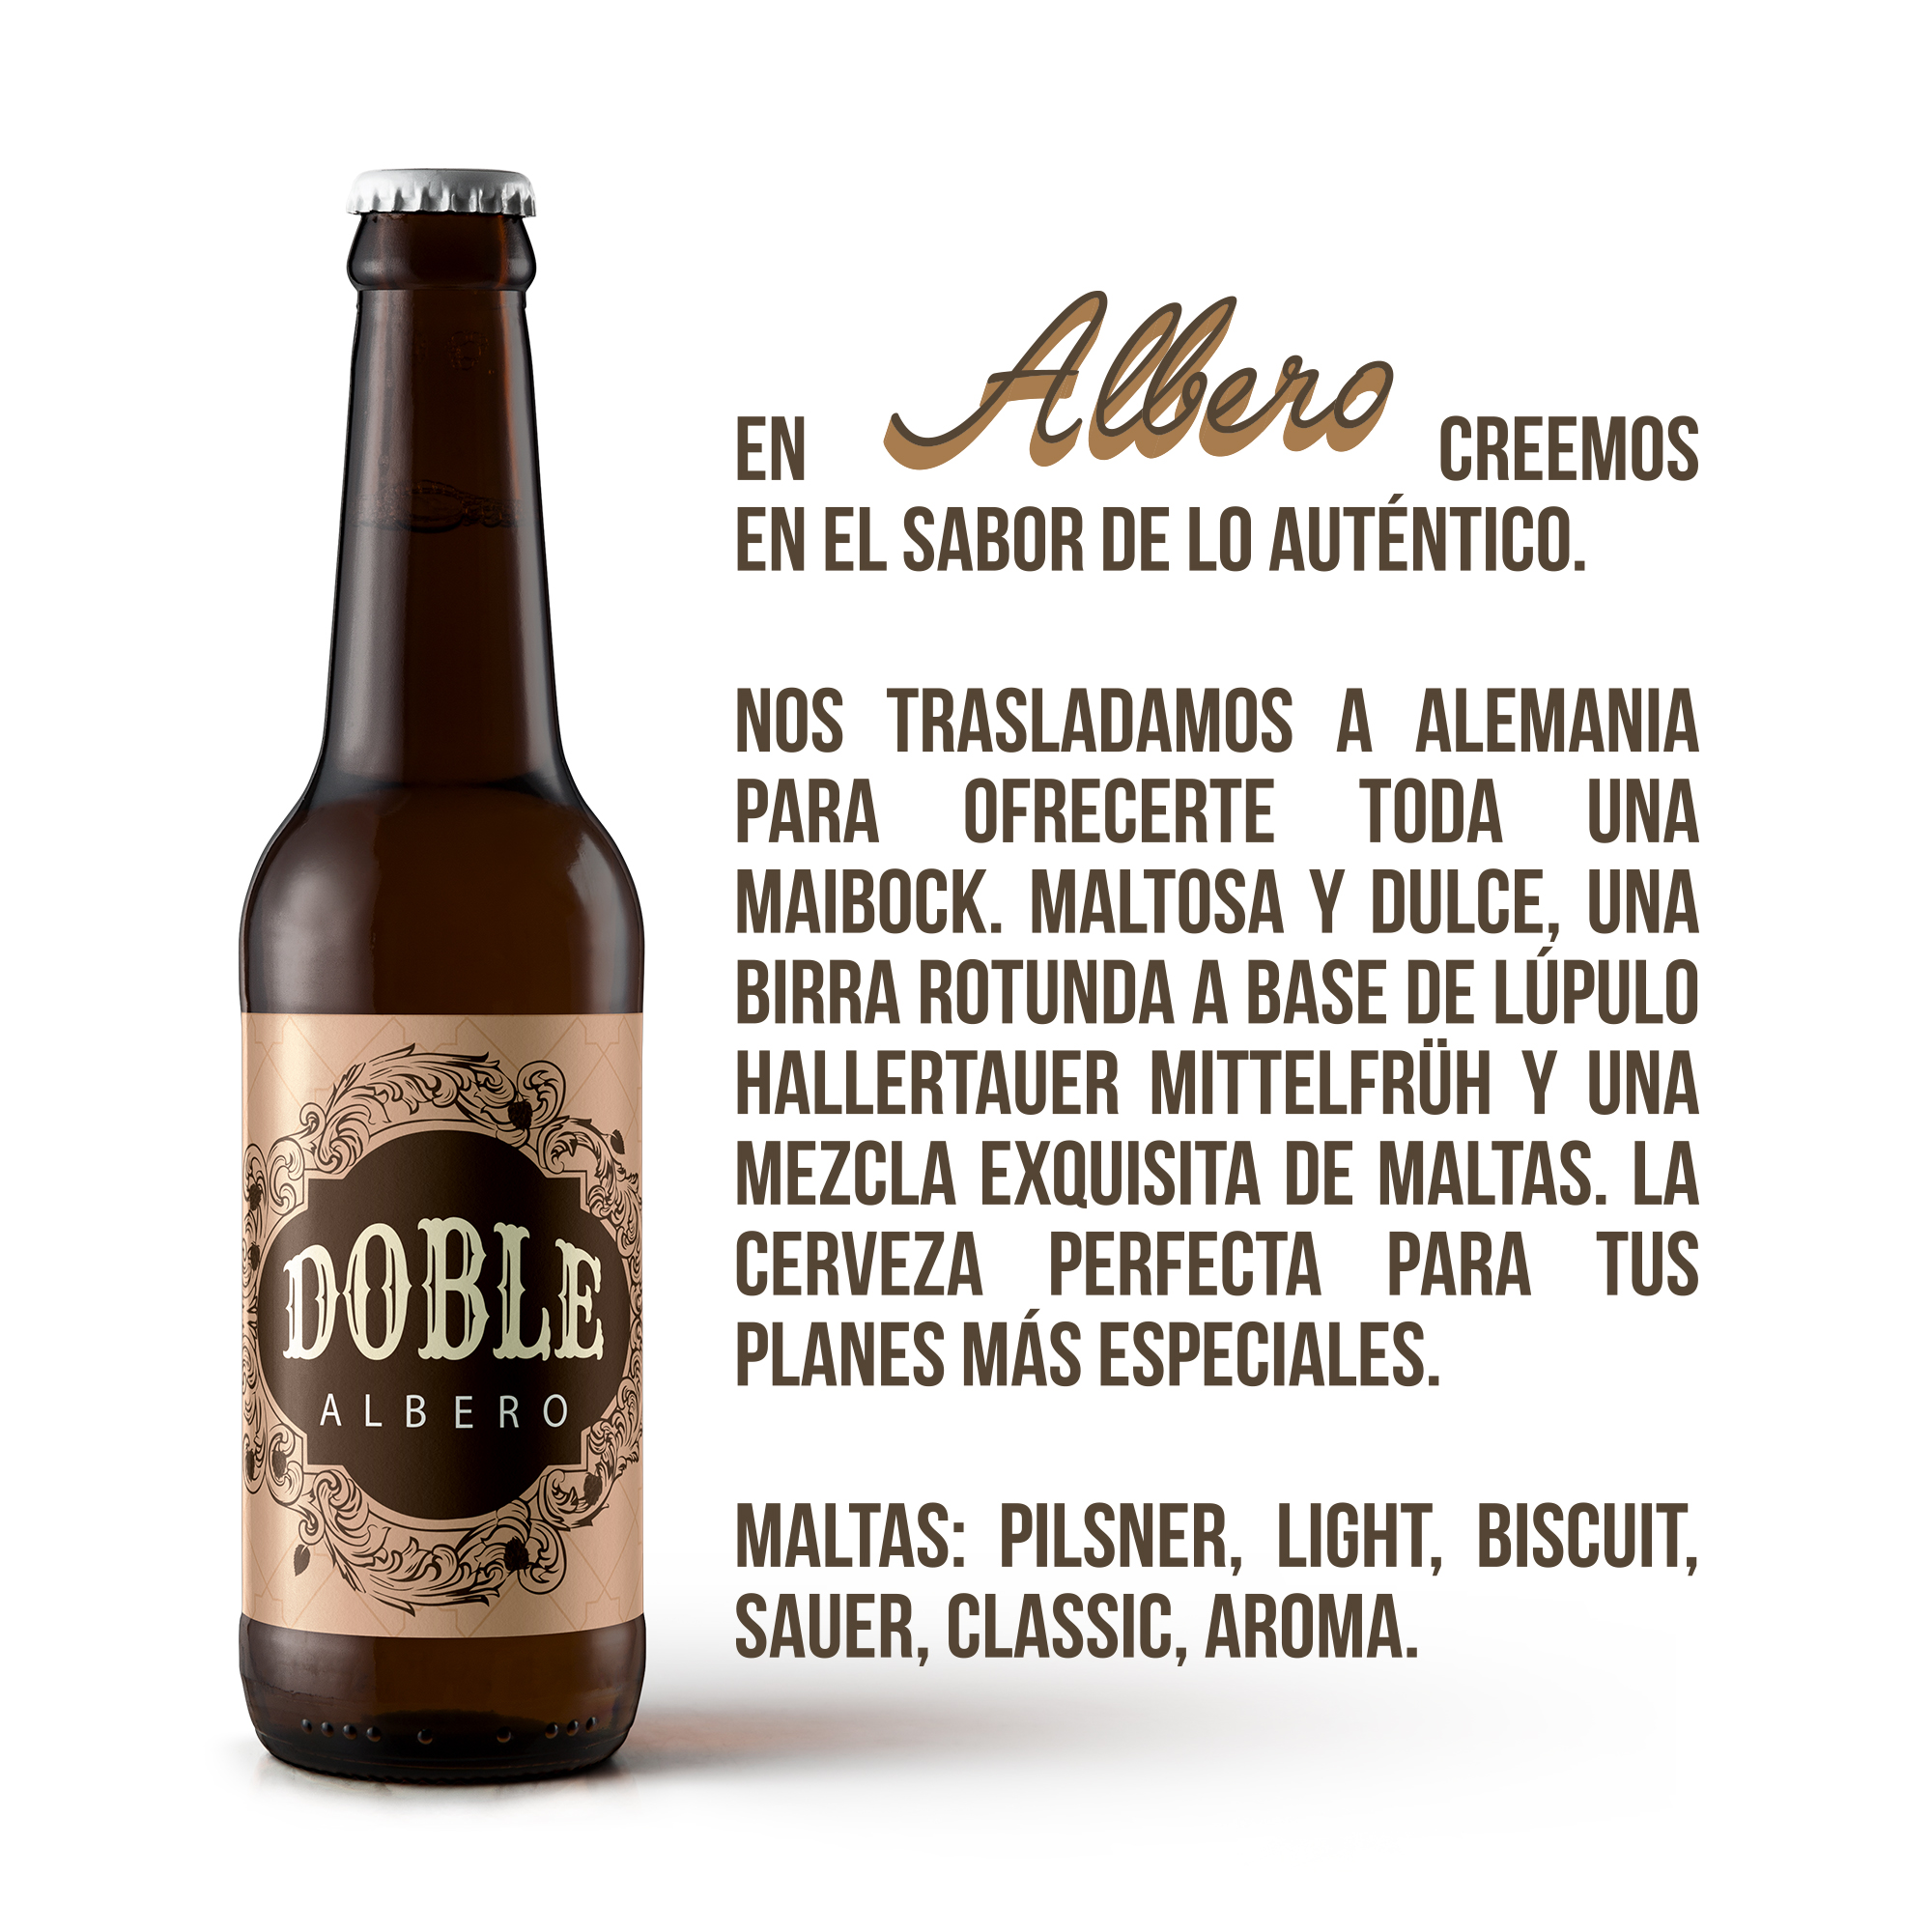 https://www.cervezasalbero.es/wp-content/uploads/2020/04/2000x2000-doble.jpg